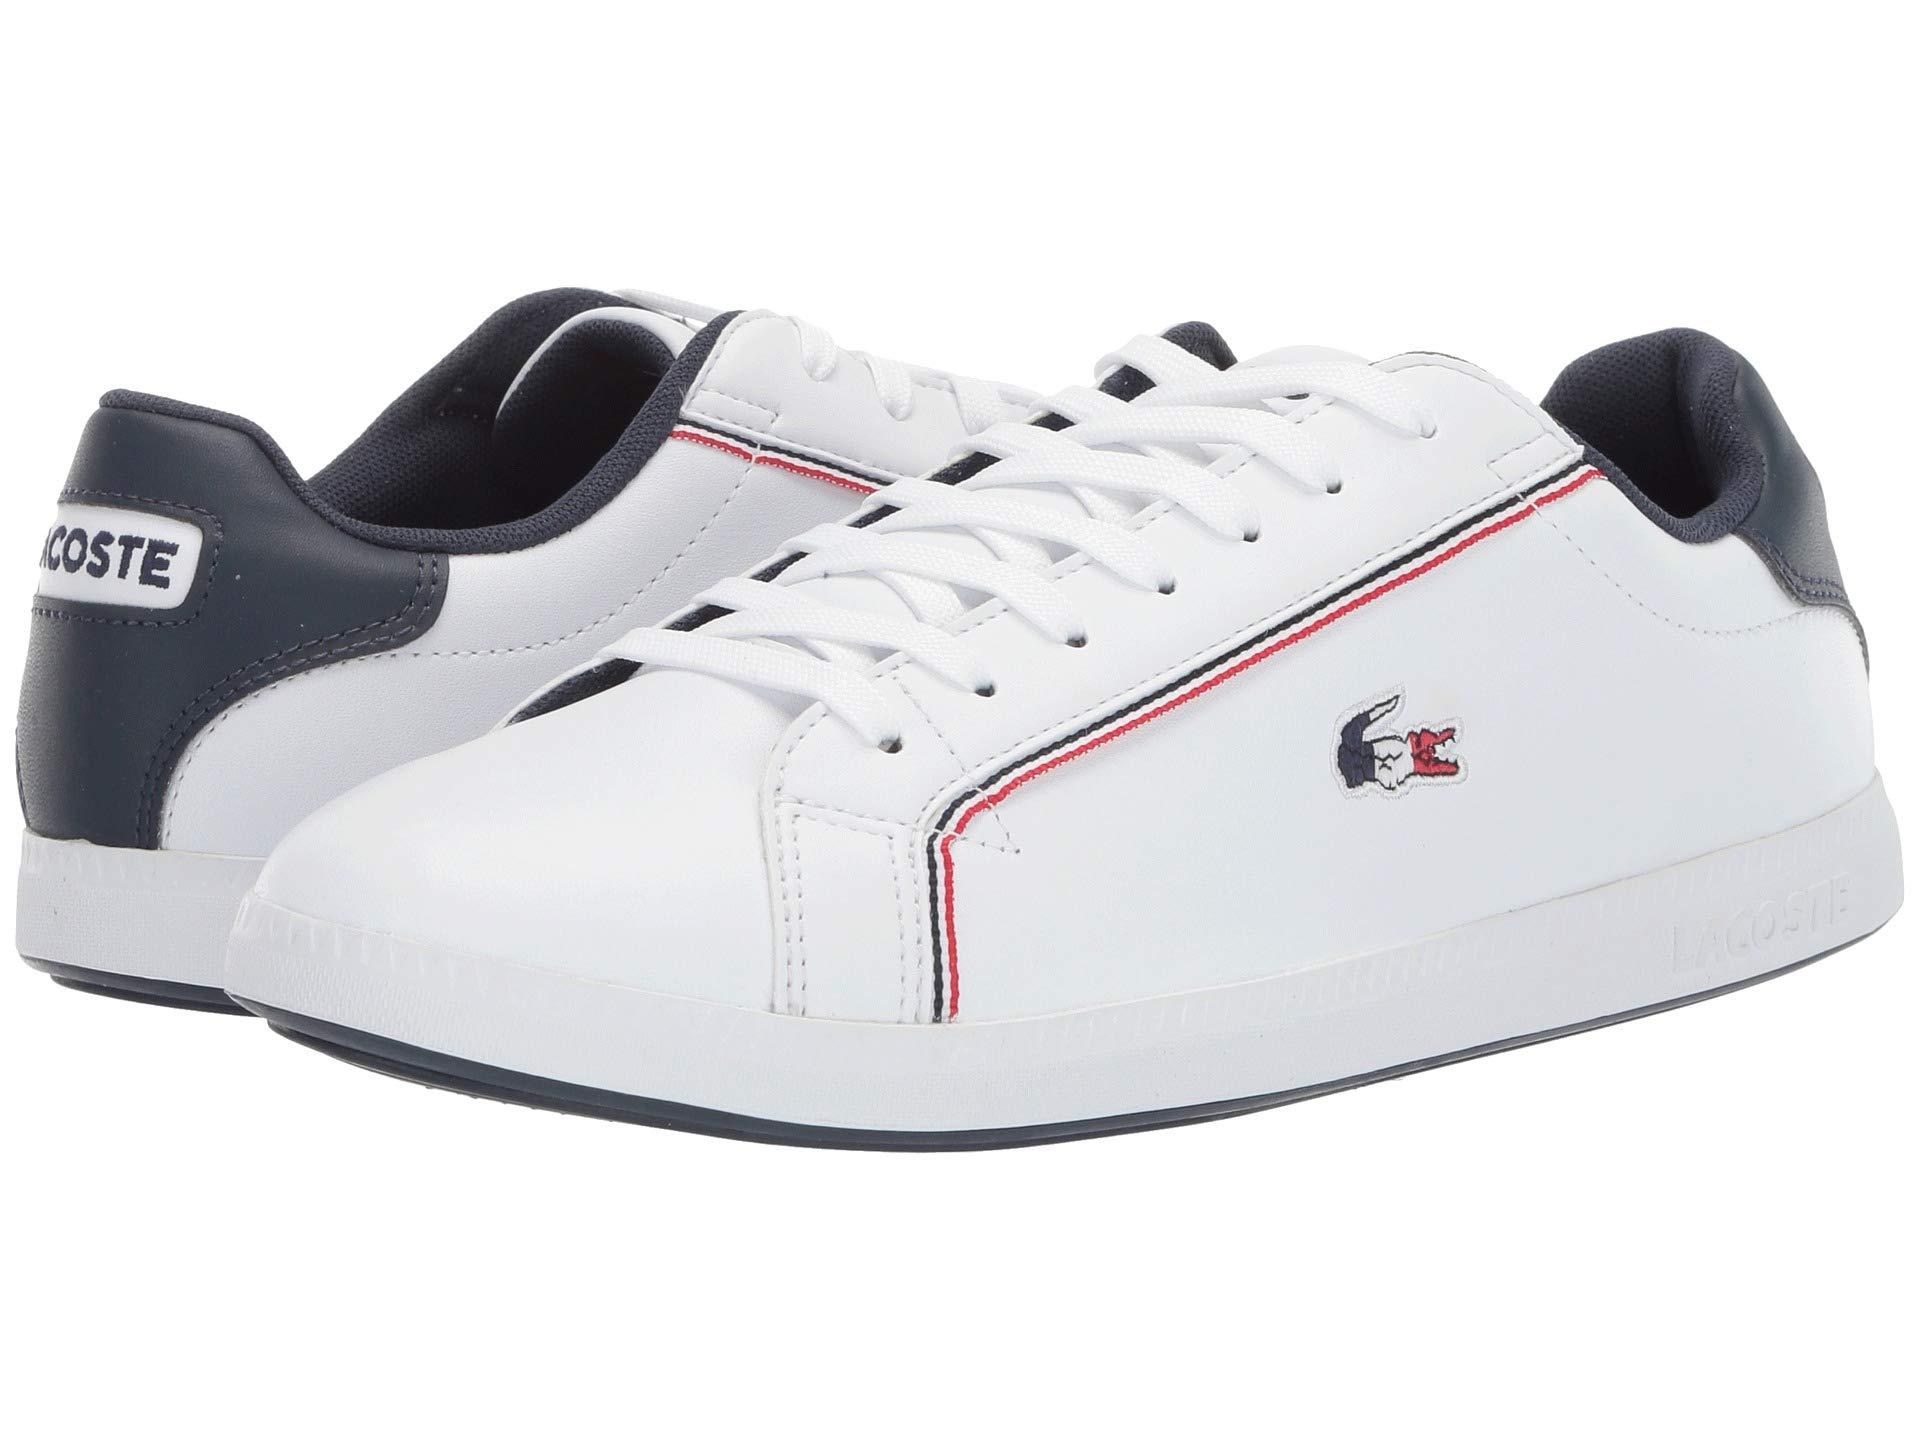 e793b7701cf Lyst - Lacoste Graduate 119 3 Sma (white navy red) Men s Shoes in ...